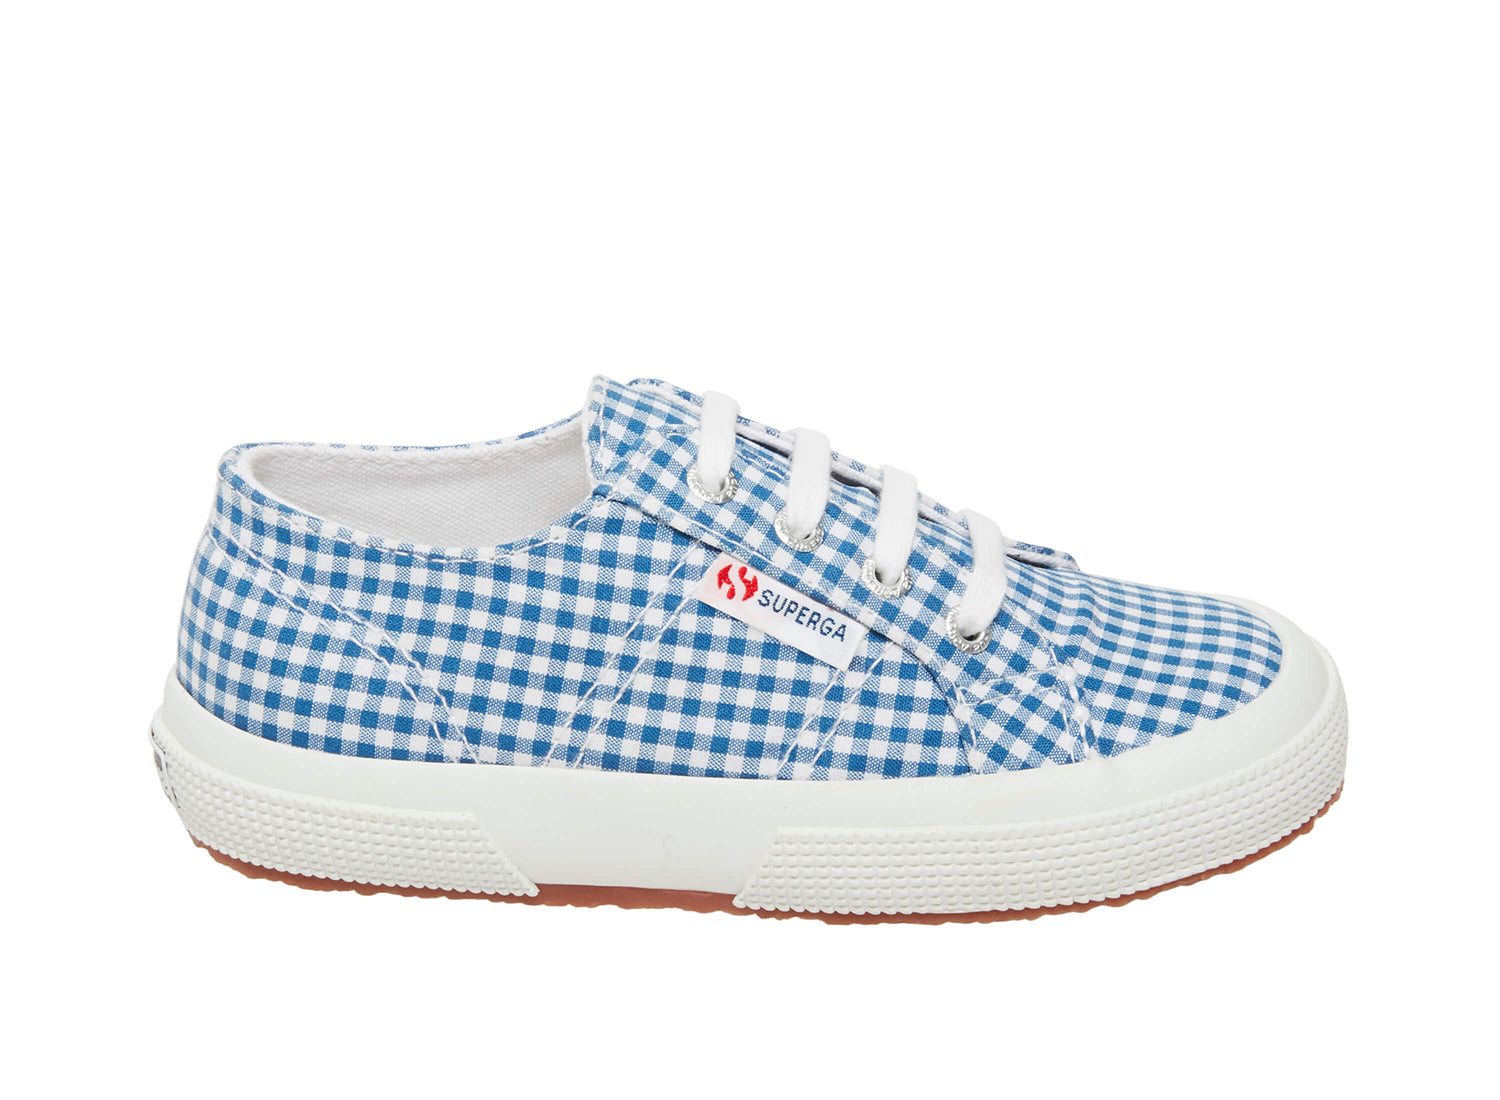 Superga 2750 cotginghamj blue gingham side